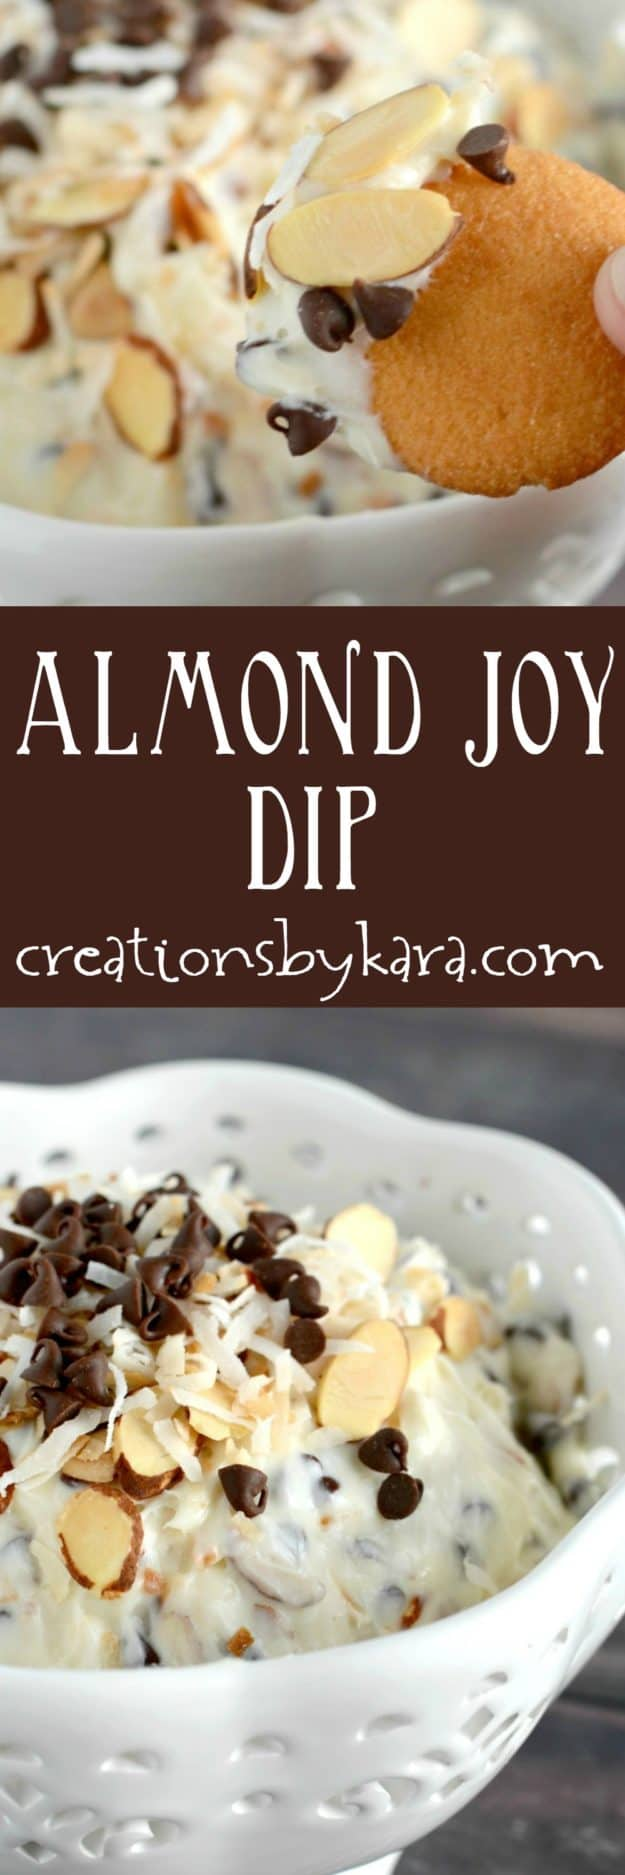 Sweet and creamy Almond Joy Dip recipe. This almond coconut dip is perfect with fruit, pretzels, or crackers. A tasty dip recipe that everyone will love!